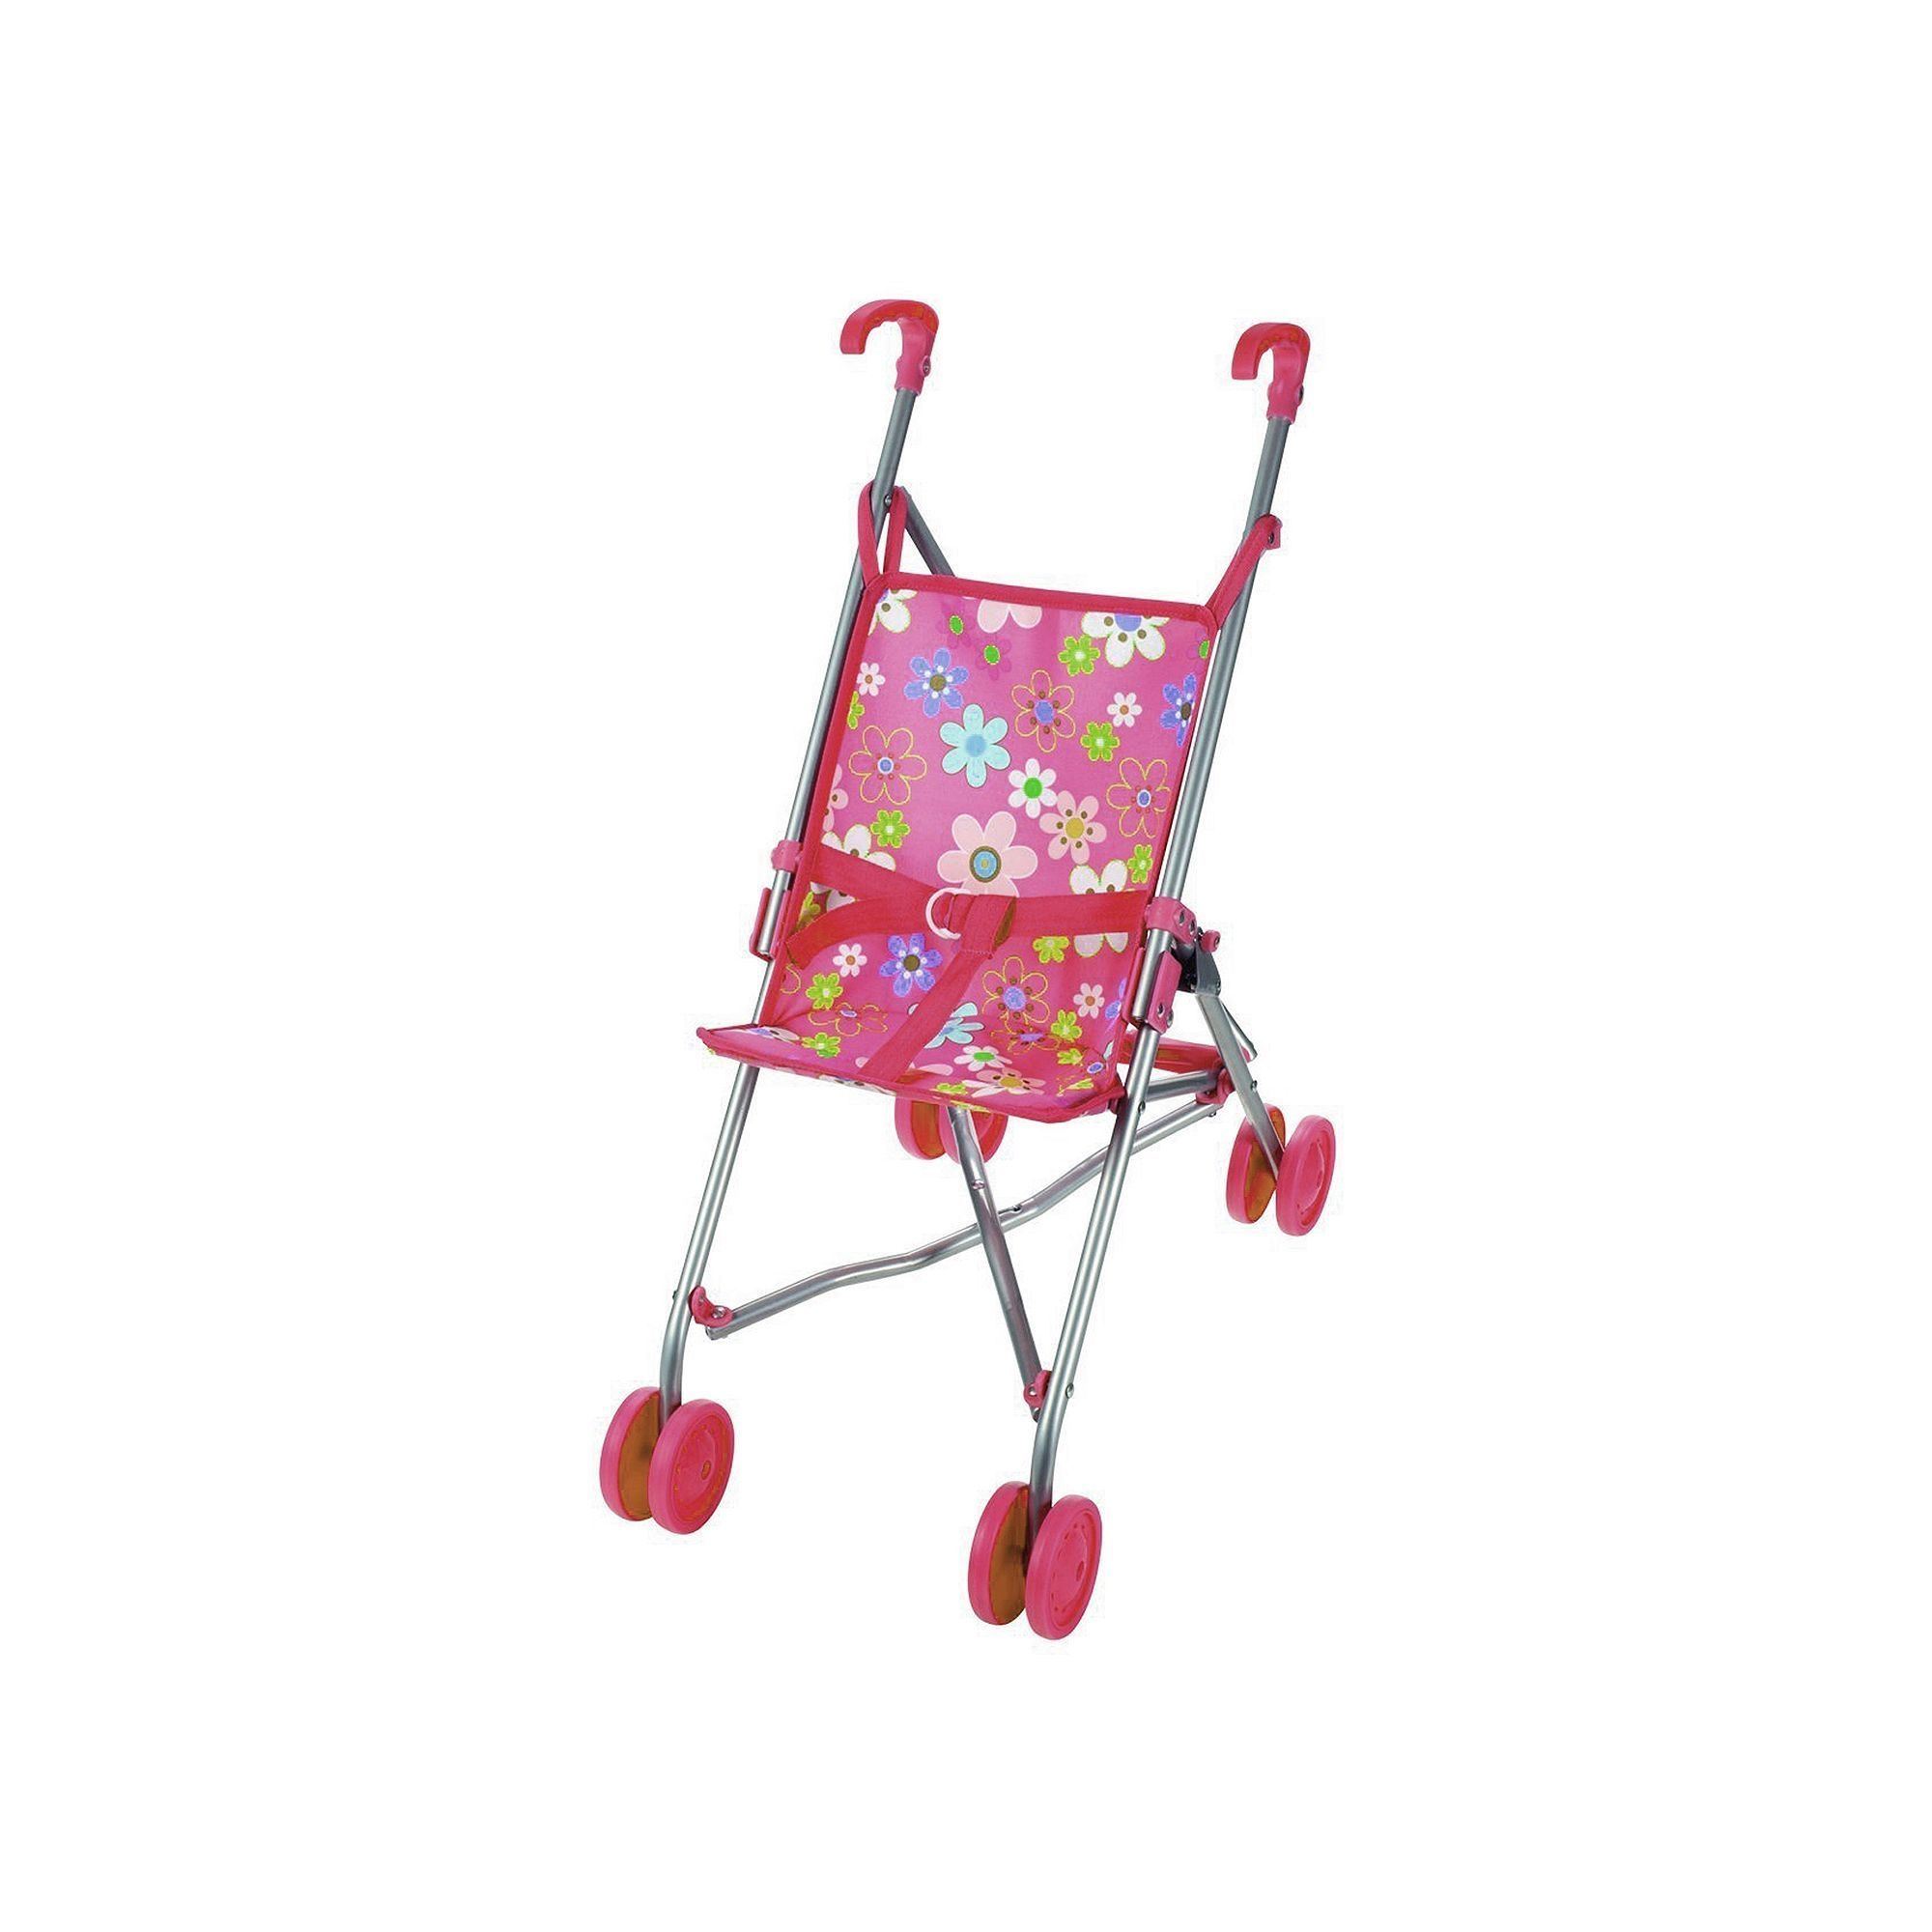 Correct advice in picking the perfect umbrella stroller